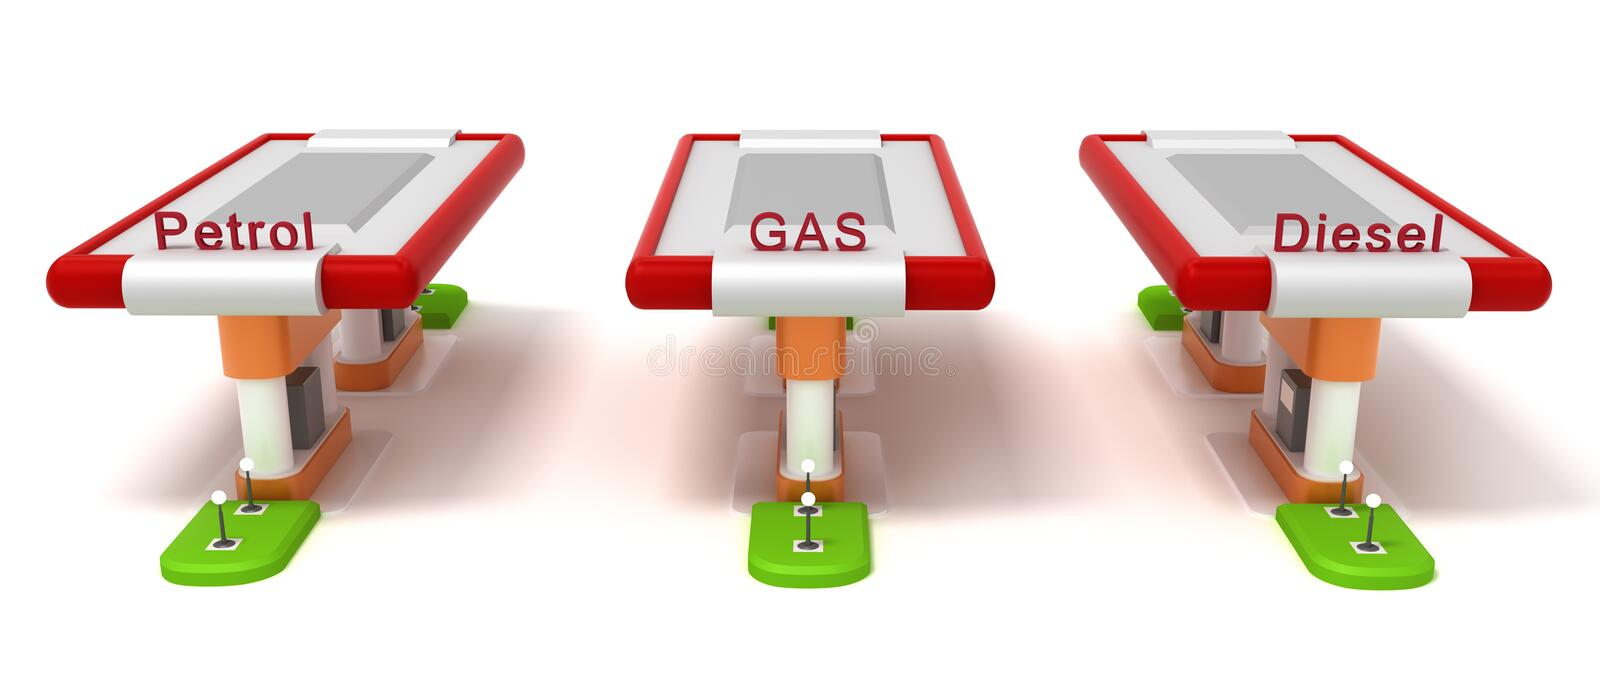 Gasoline Stations Royalty Free Stock Photos